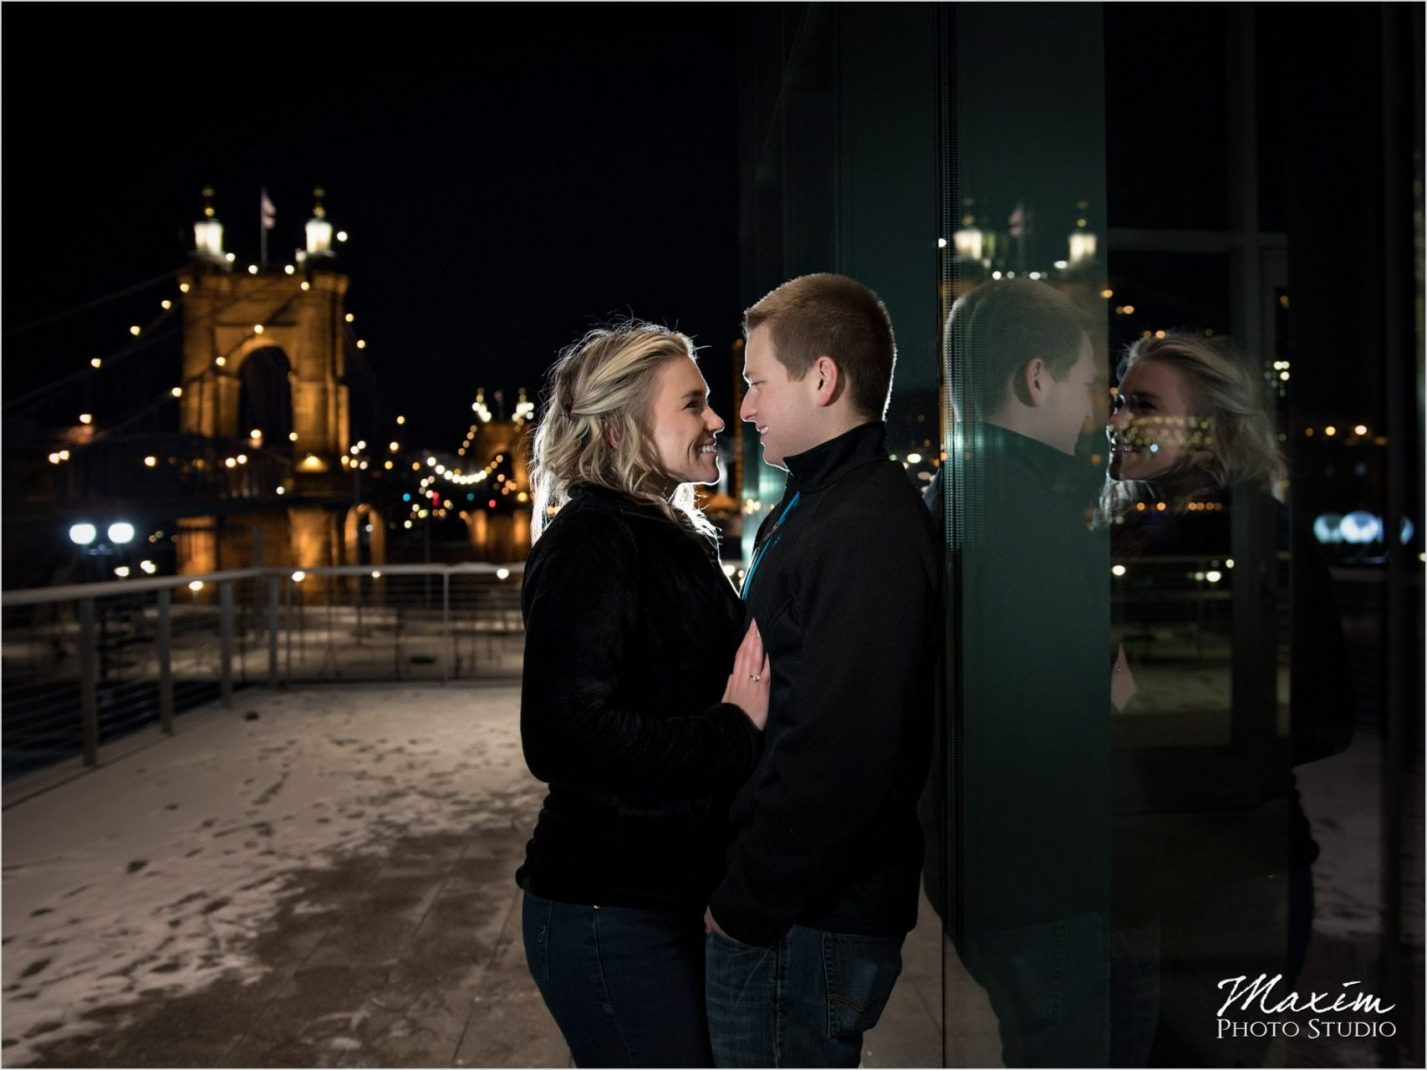 Smale Rivefront Park Winter Night Engagement